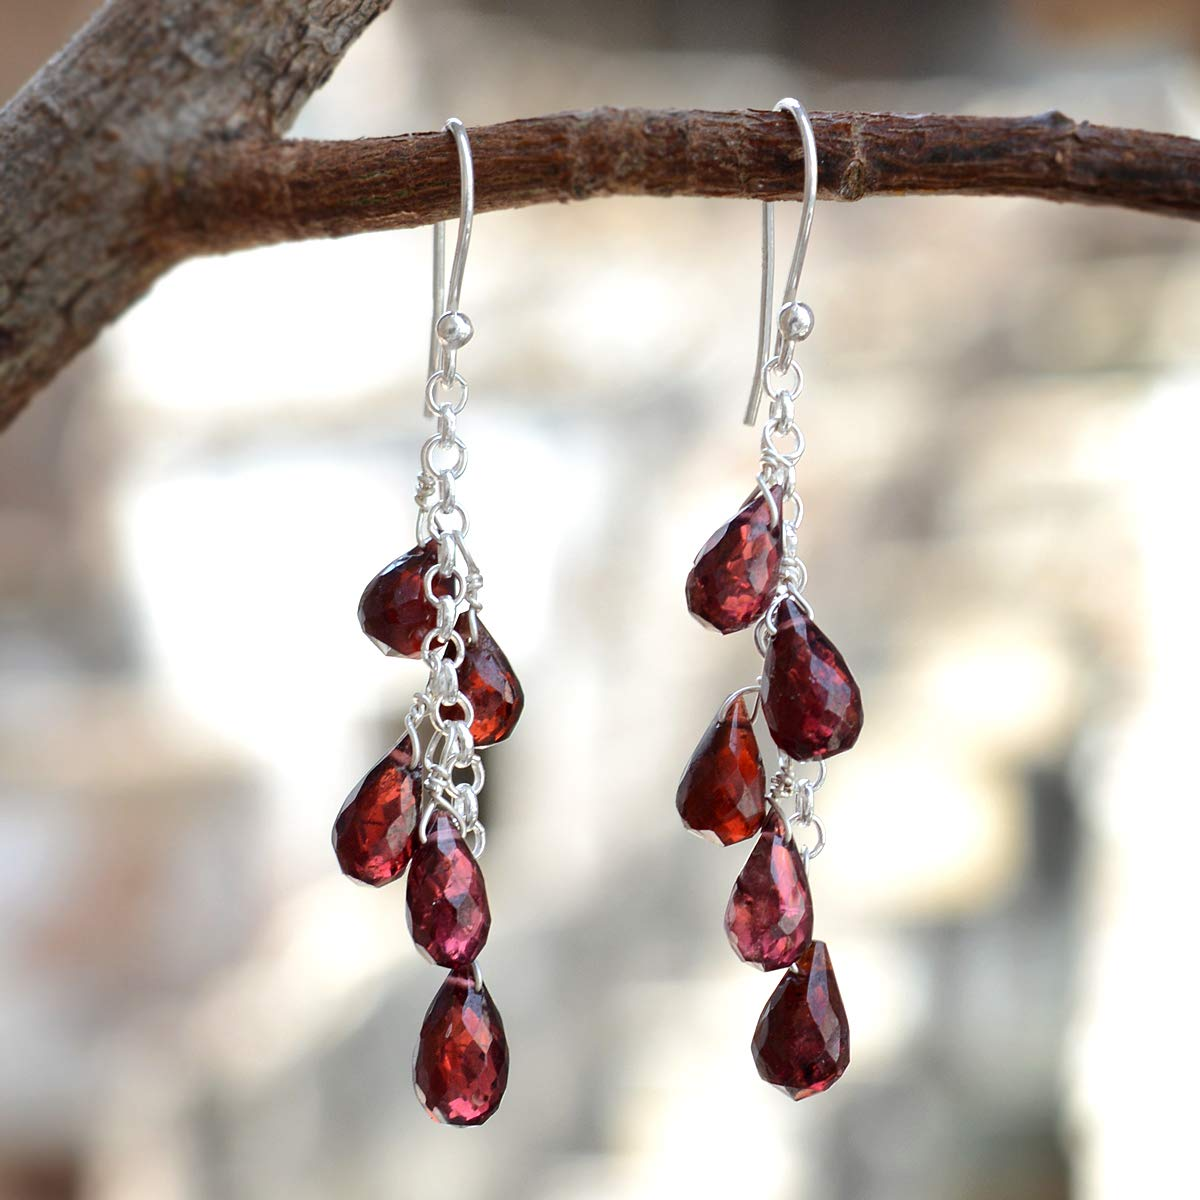 Silvestoo Jaipur Red Garnet Gemstone 925 Sterling Silver Dangle Earring PG-156299